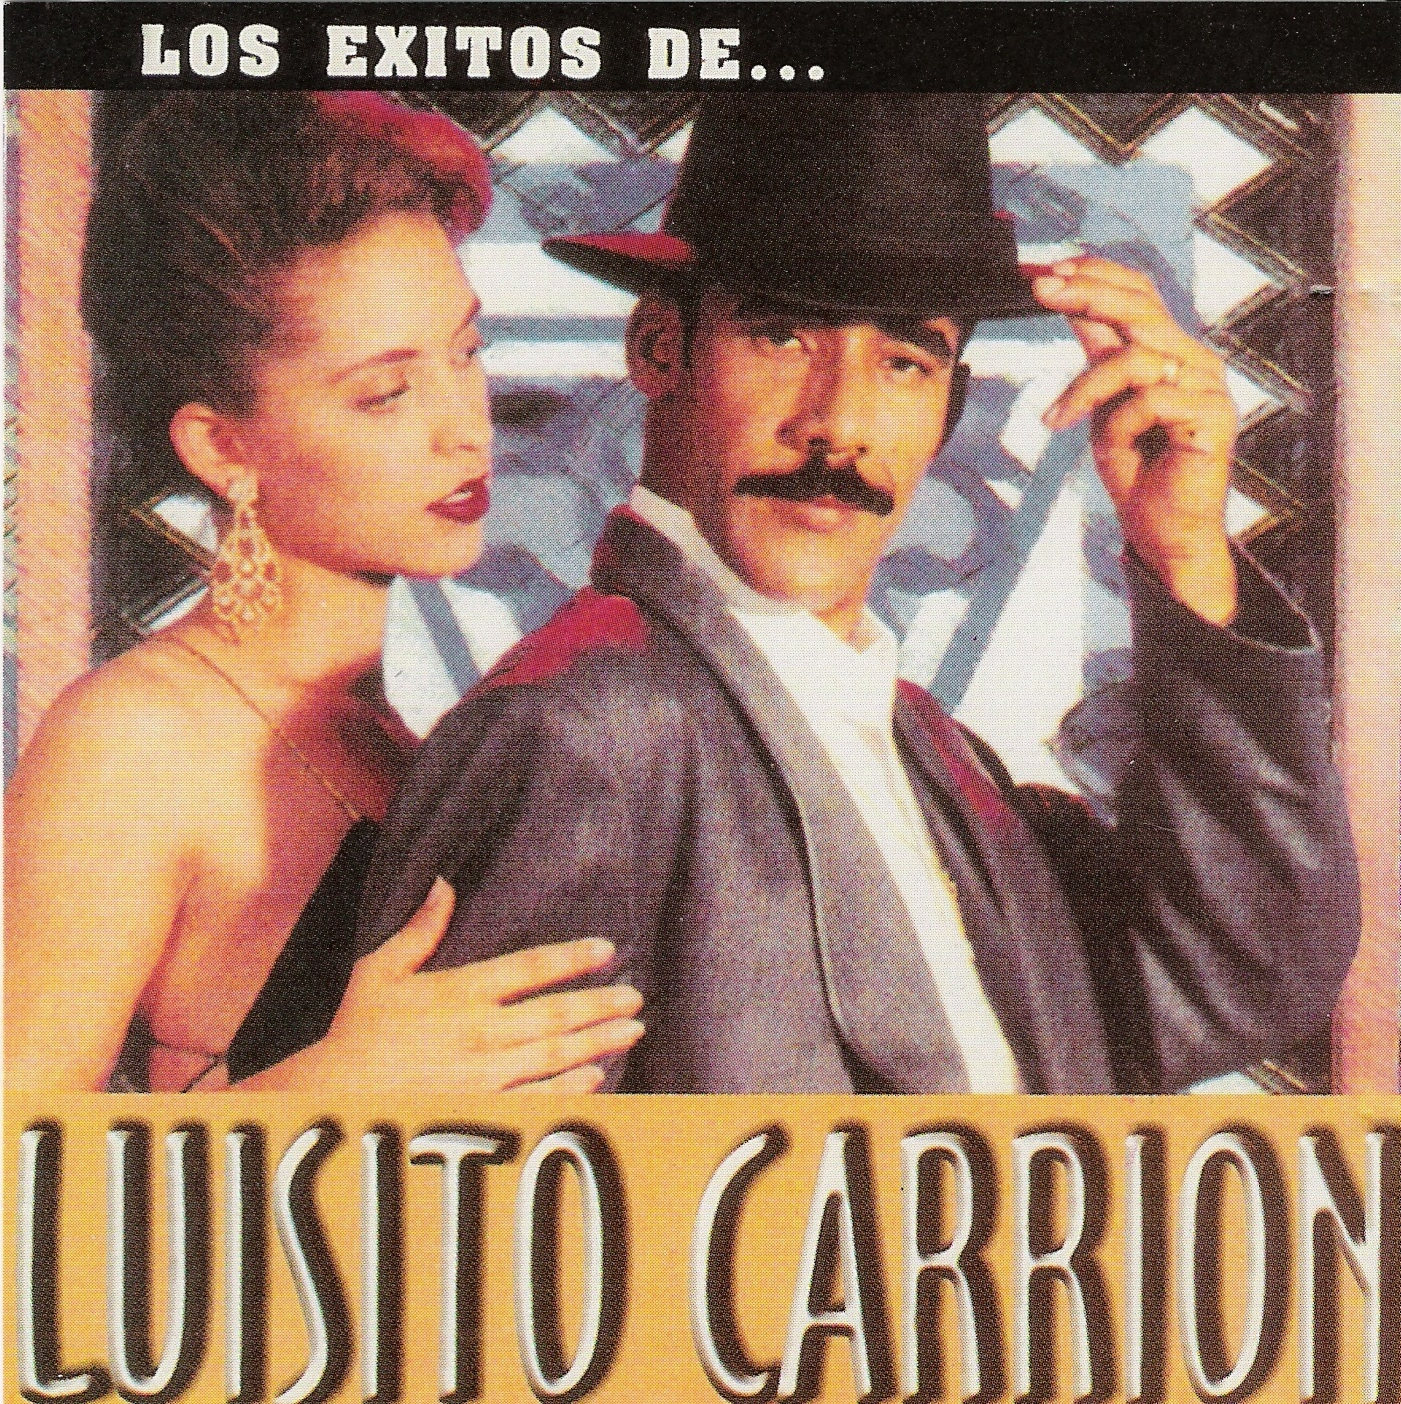 luisito carrion exitos